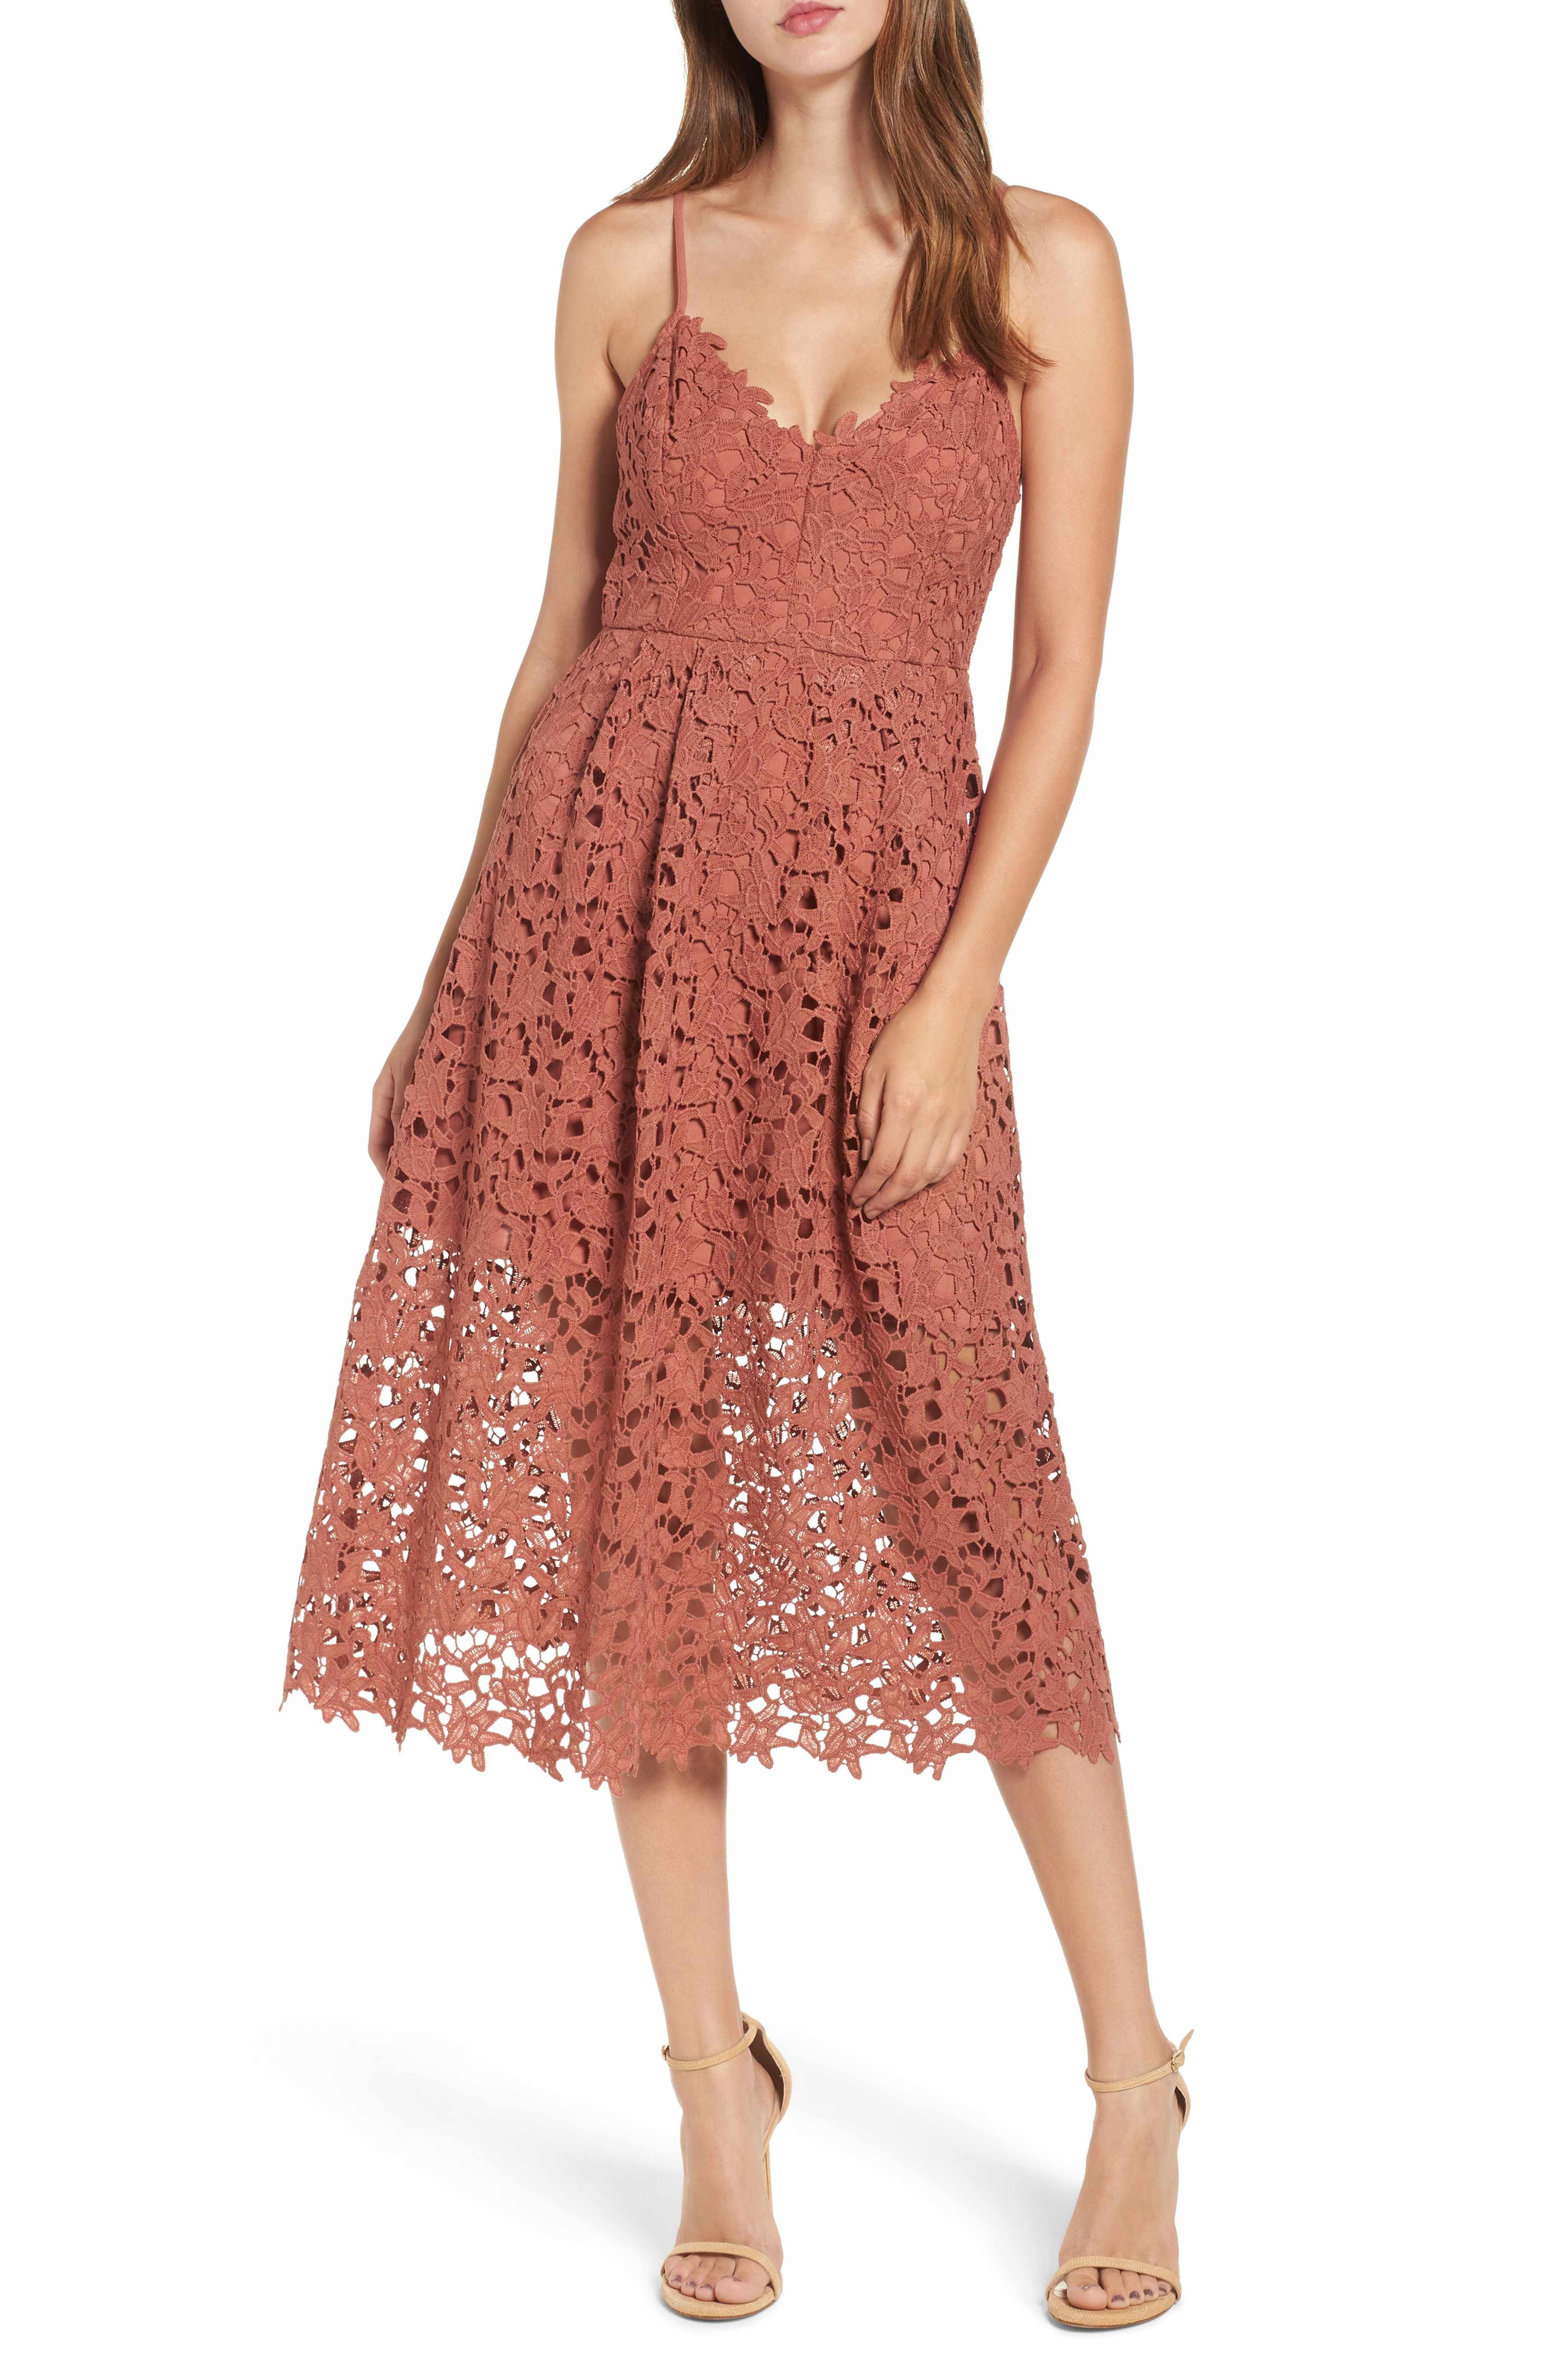 41e688862d9 Main Image - ASTR the Label Lace Midi Dress